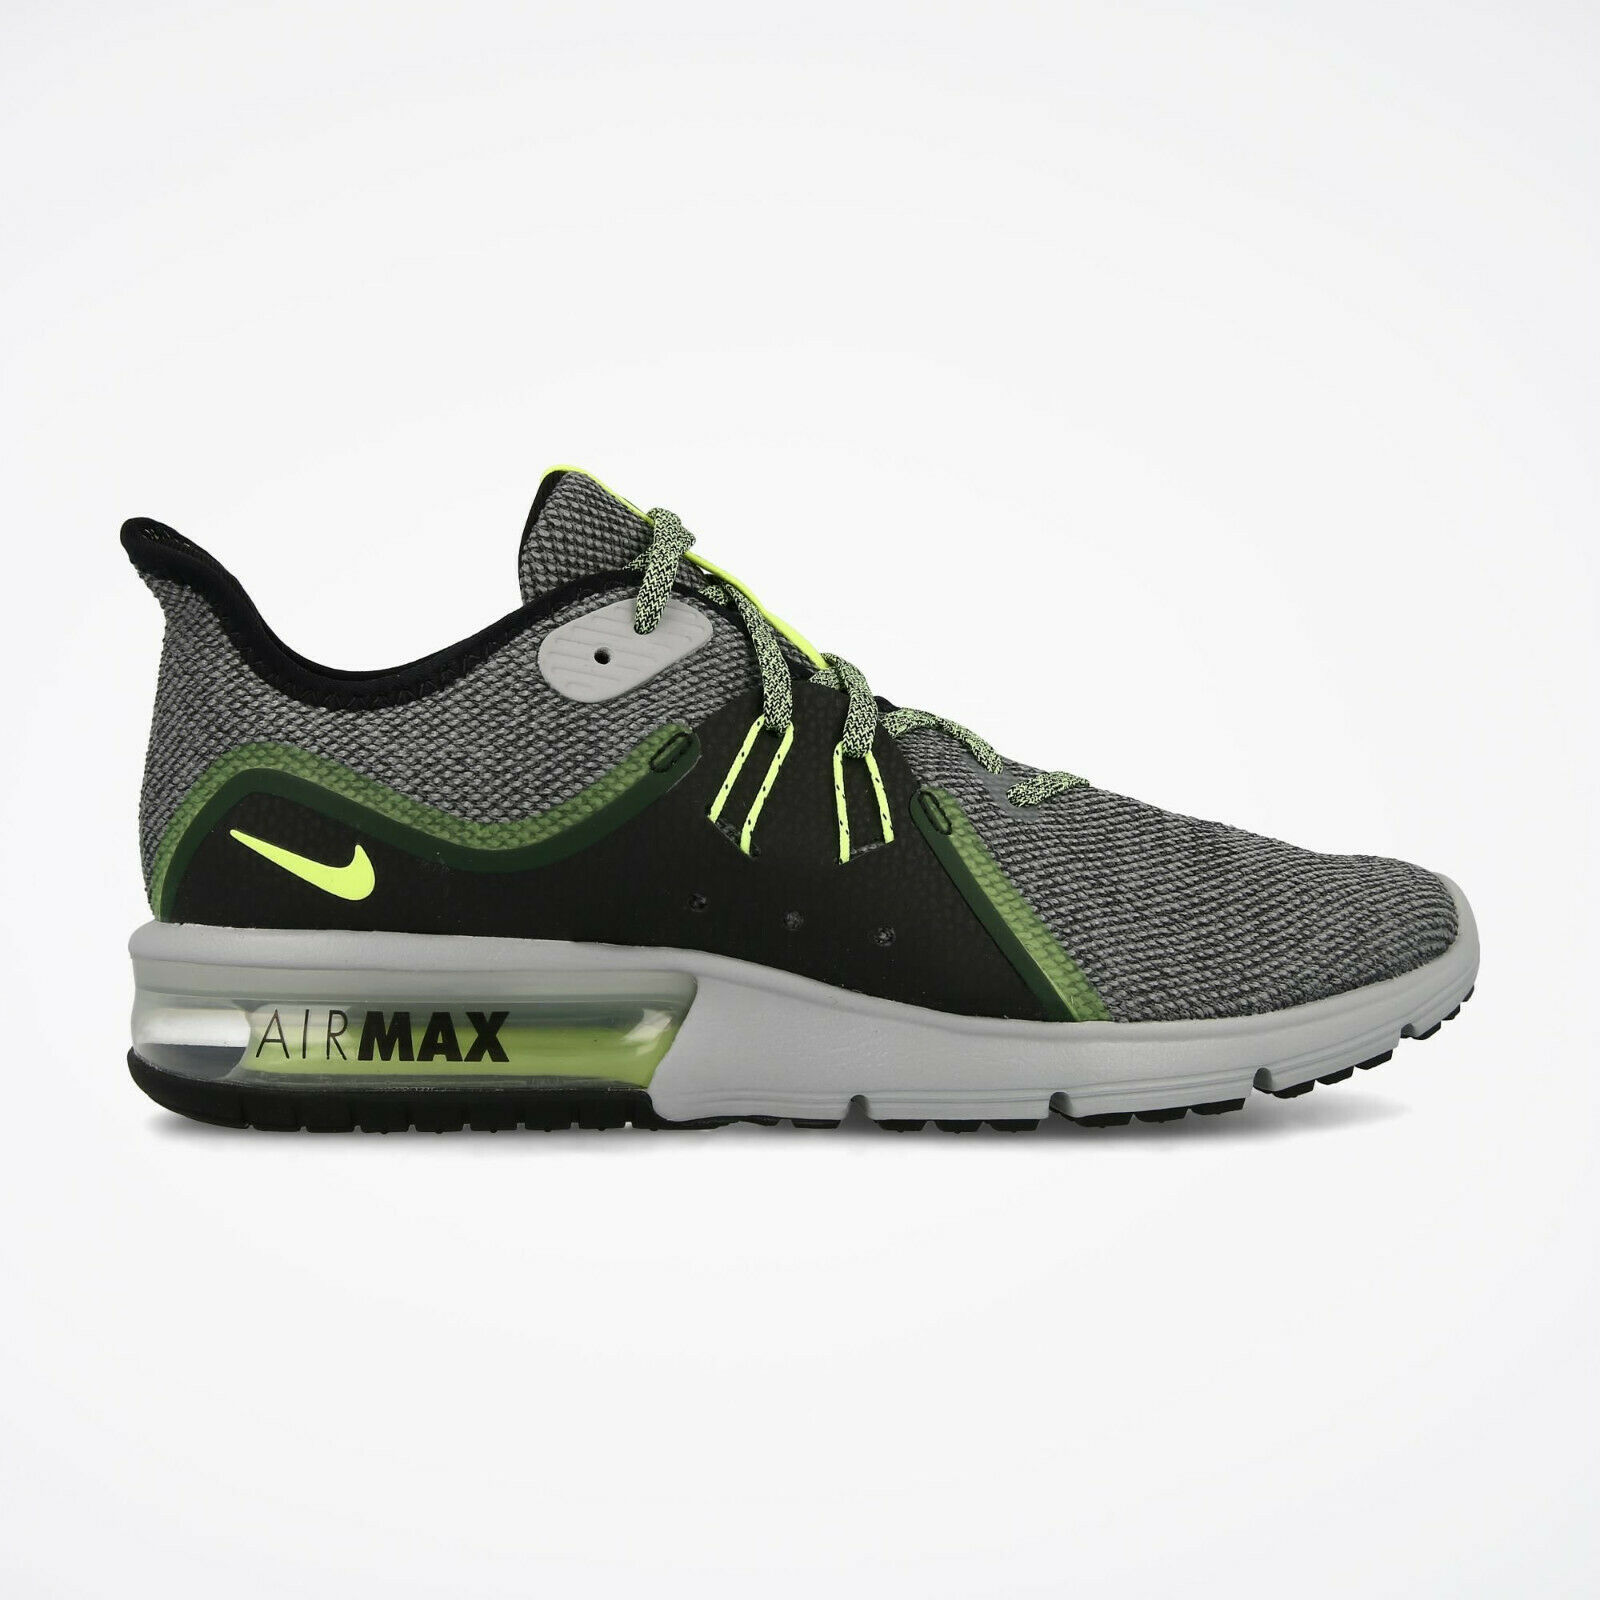 MEN'S NIKE AIR MAX SEQUENT 3 SHOES grey black volt glow 921694 007 MSRP  100